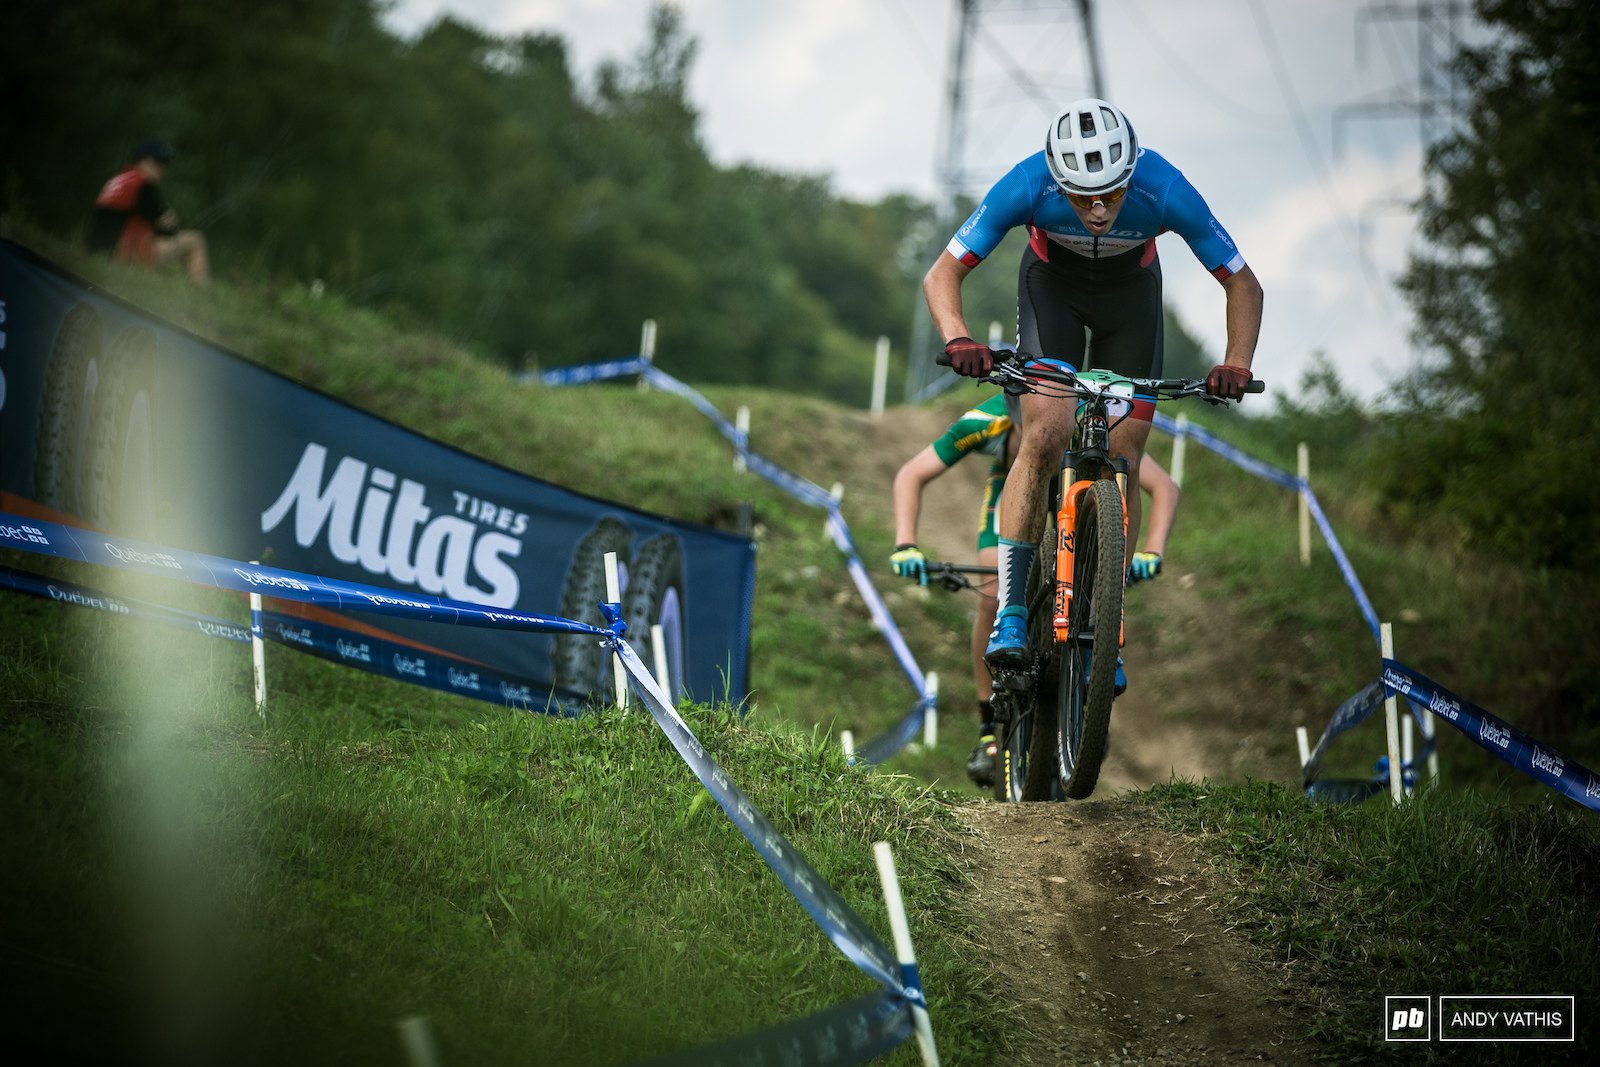 Canadian National Champ Carter Woods started strong but would fall back just missing the podium.